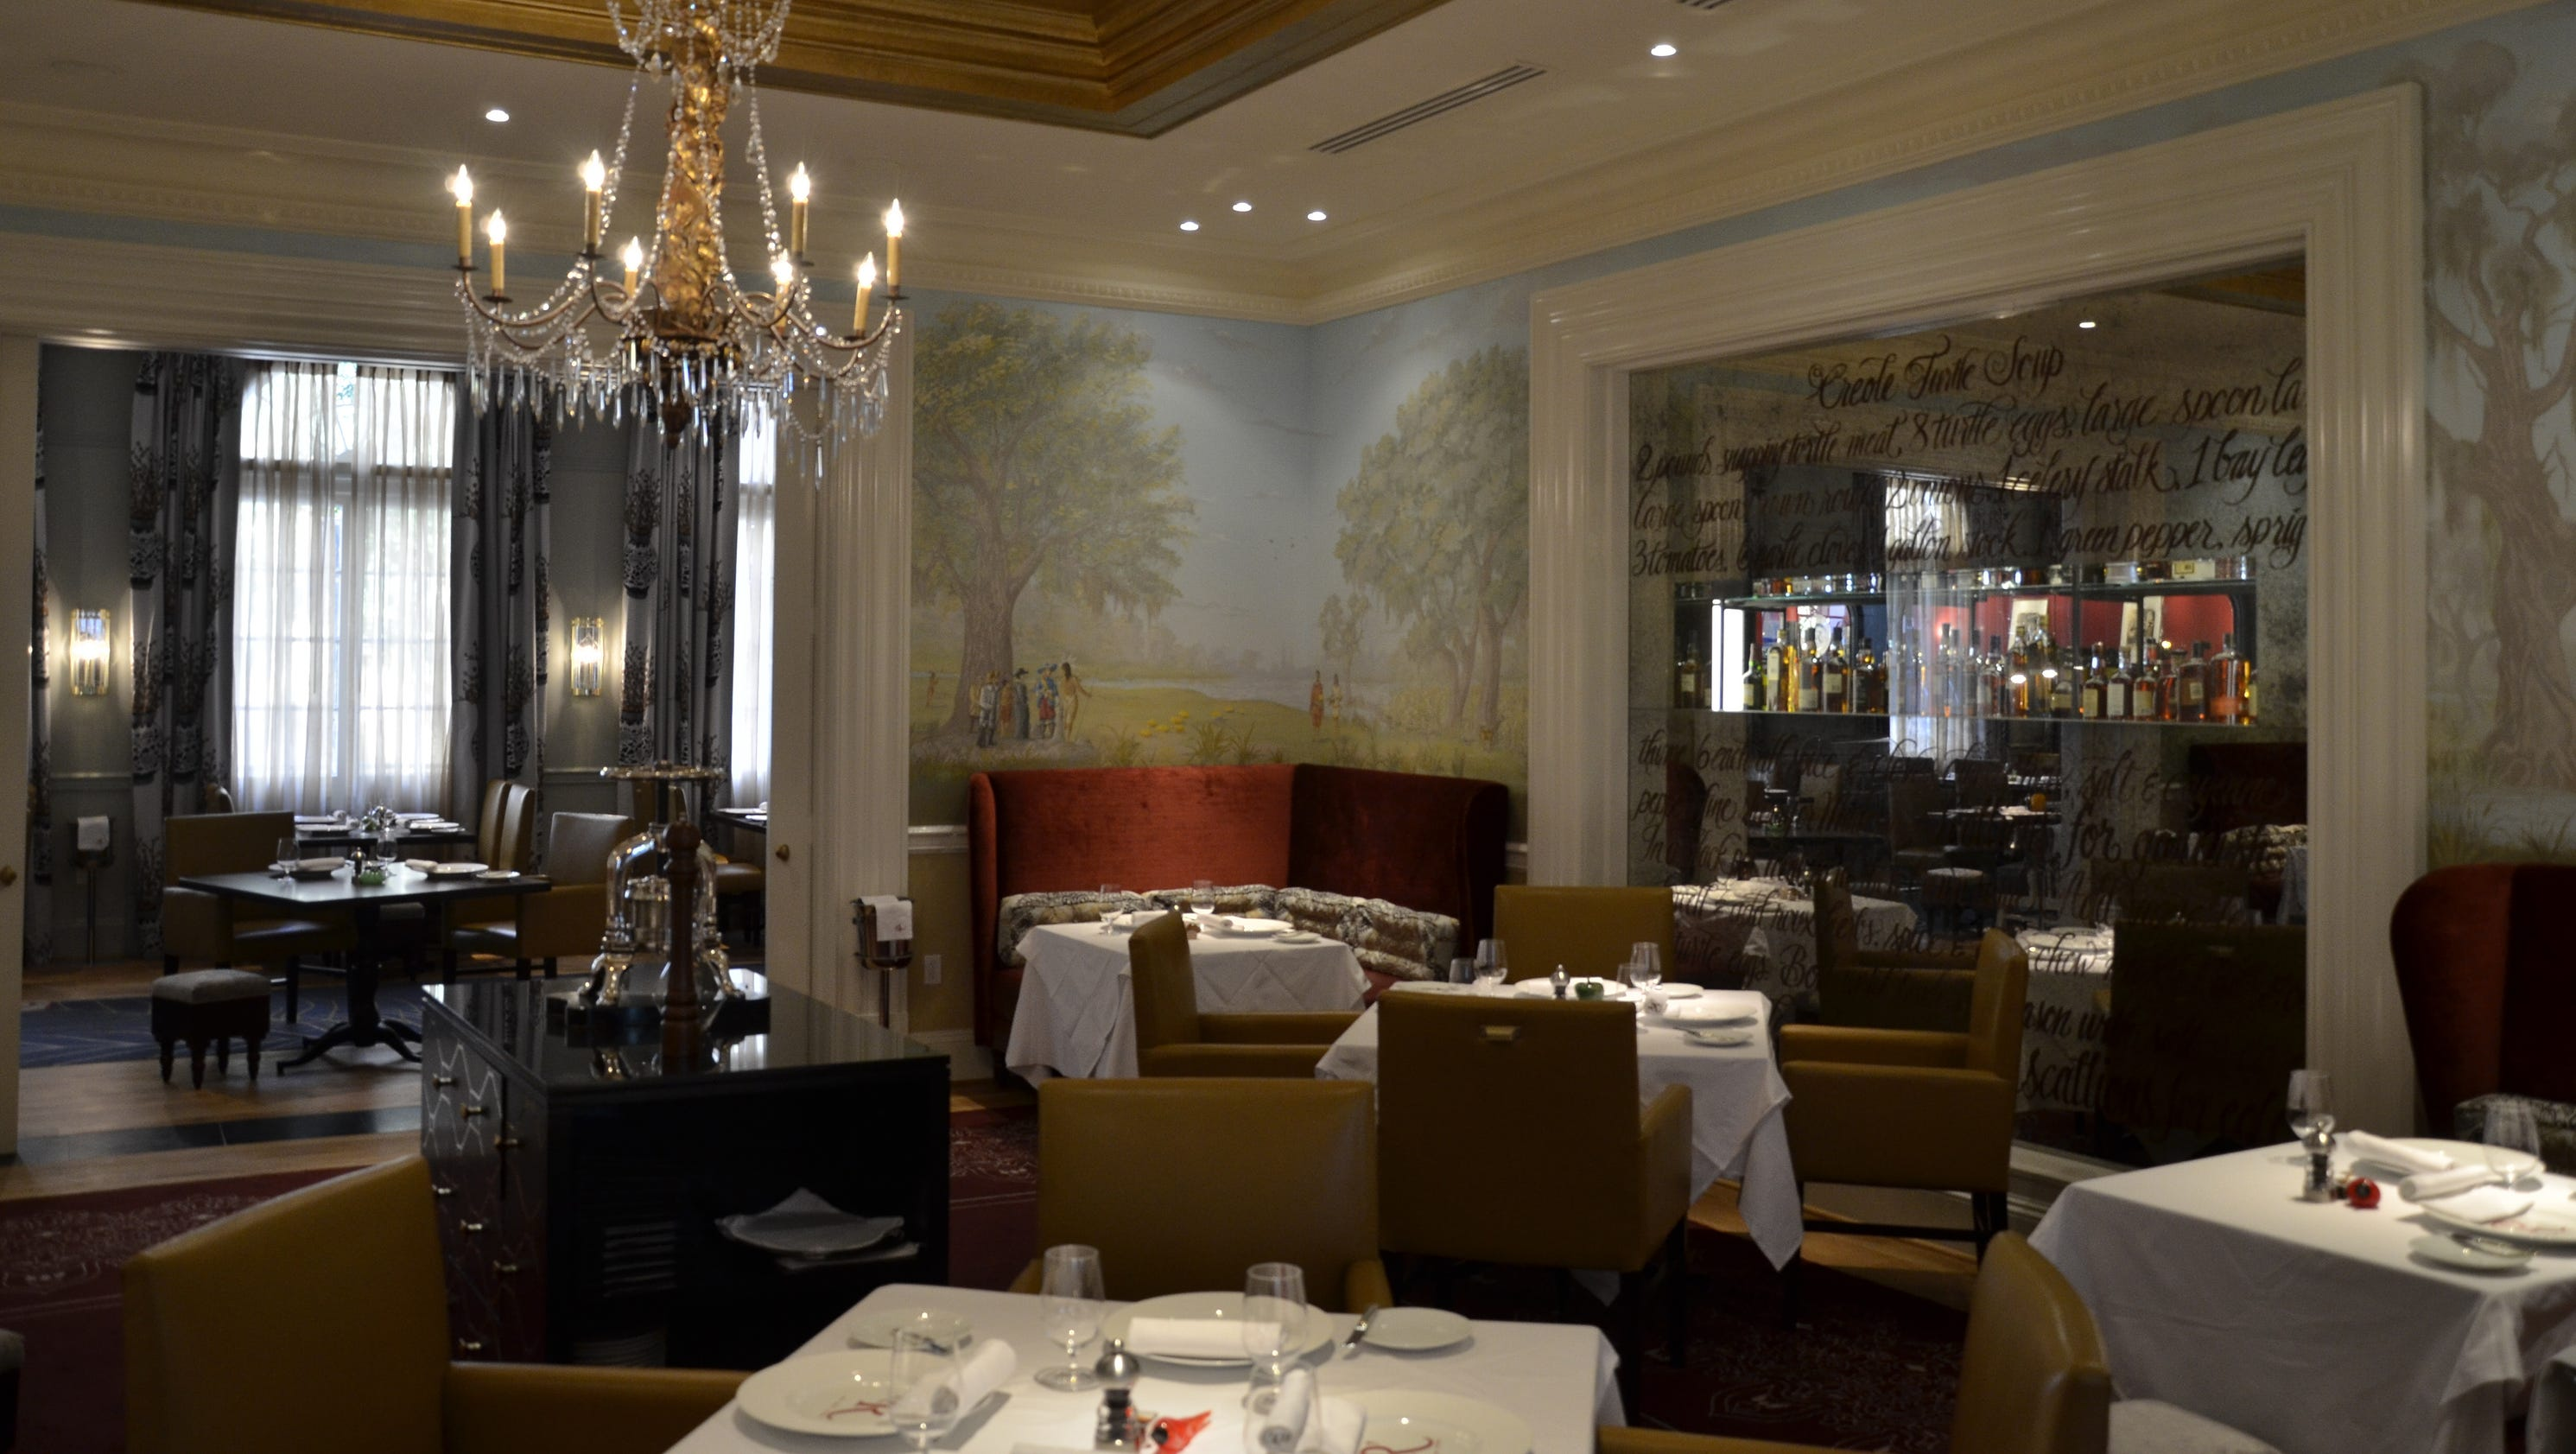 New orleans 39 dining boom new and notable restaurants - Interior design jobs washington state ...